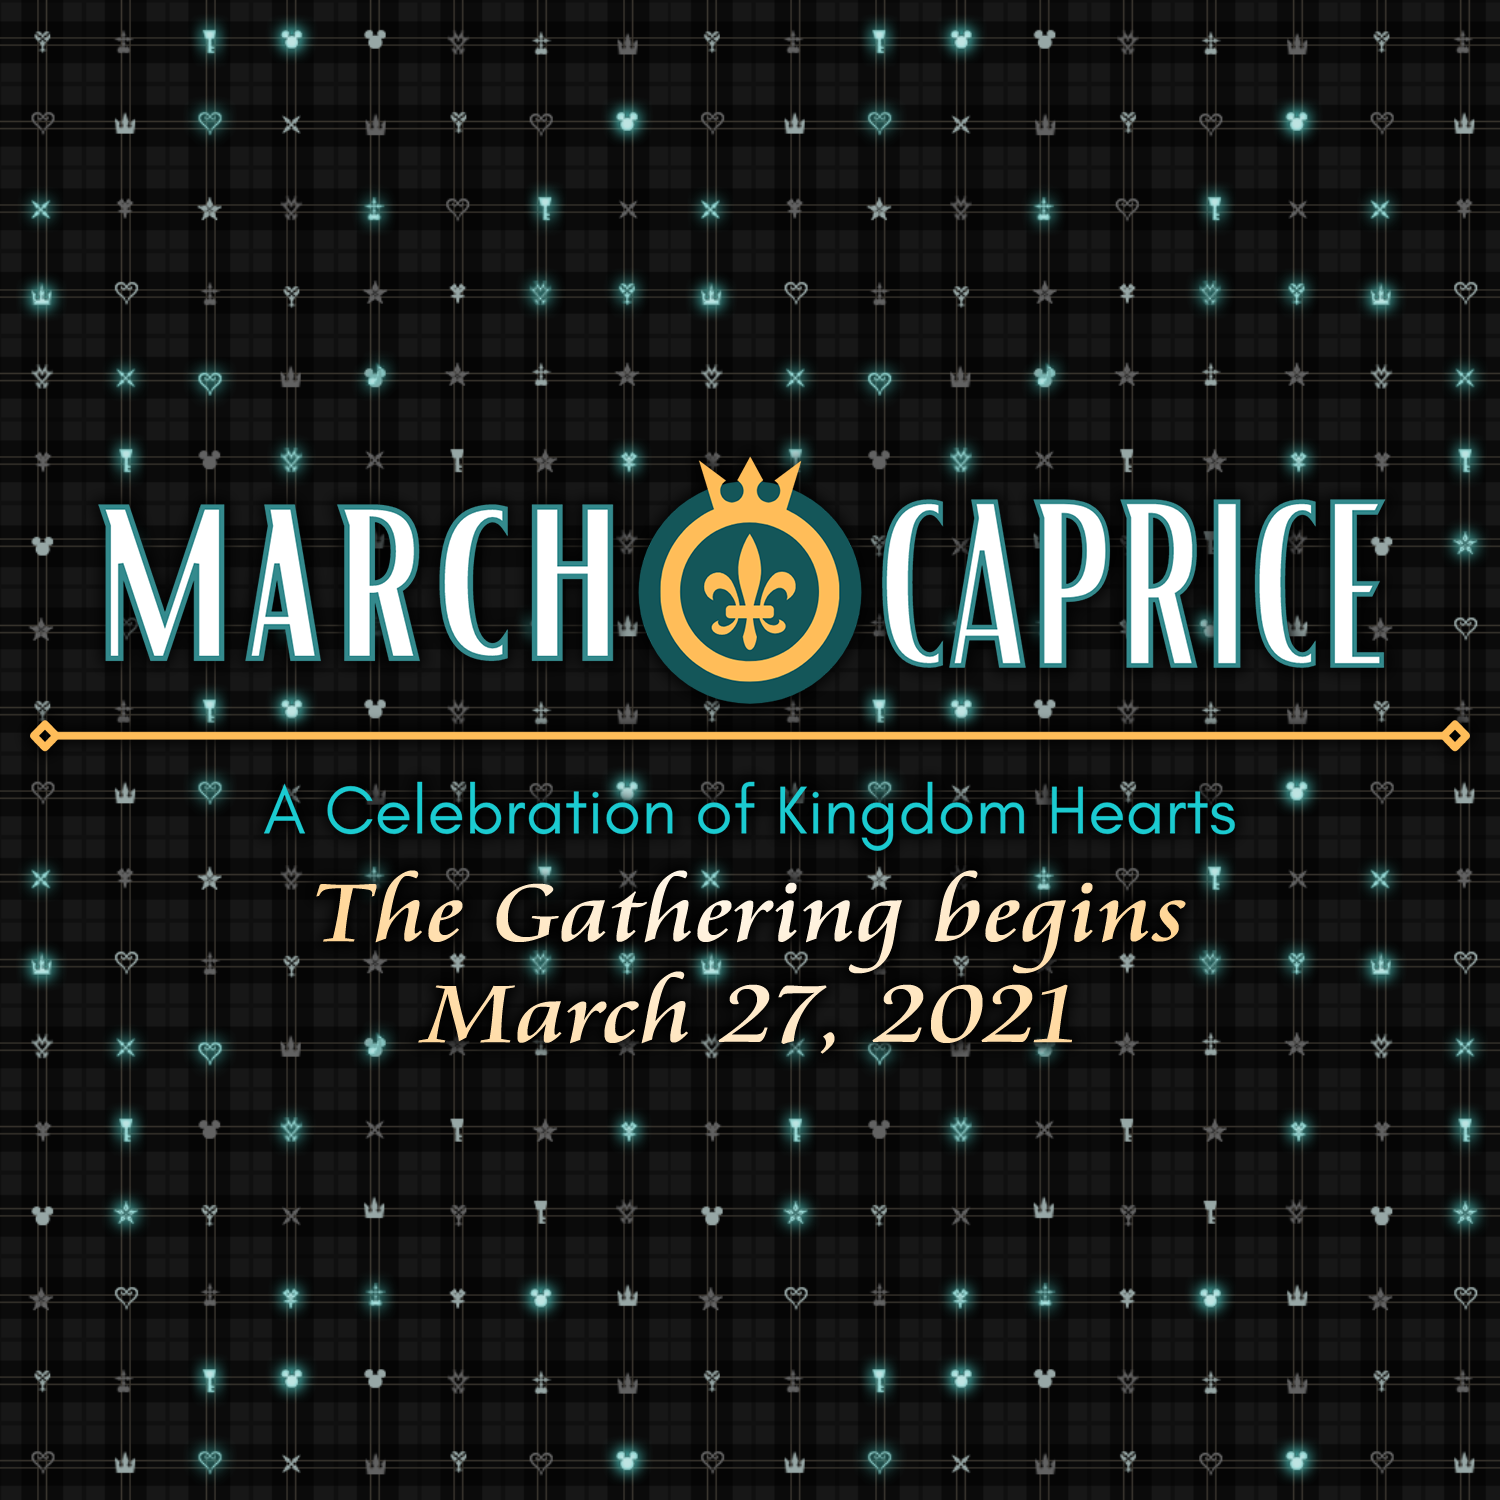 March Caprice banner 02 MC.png